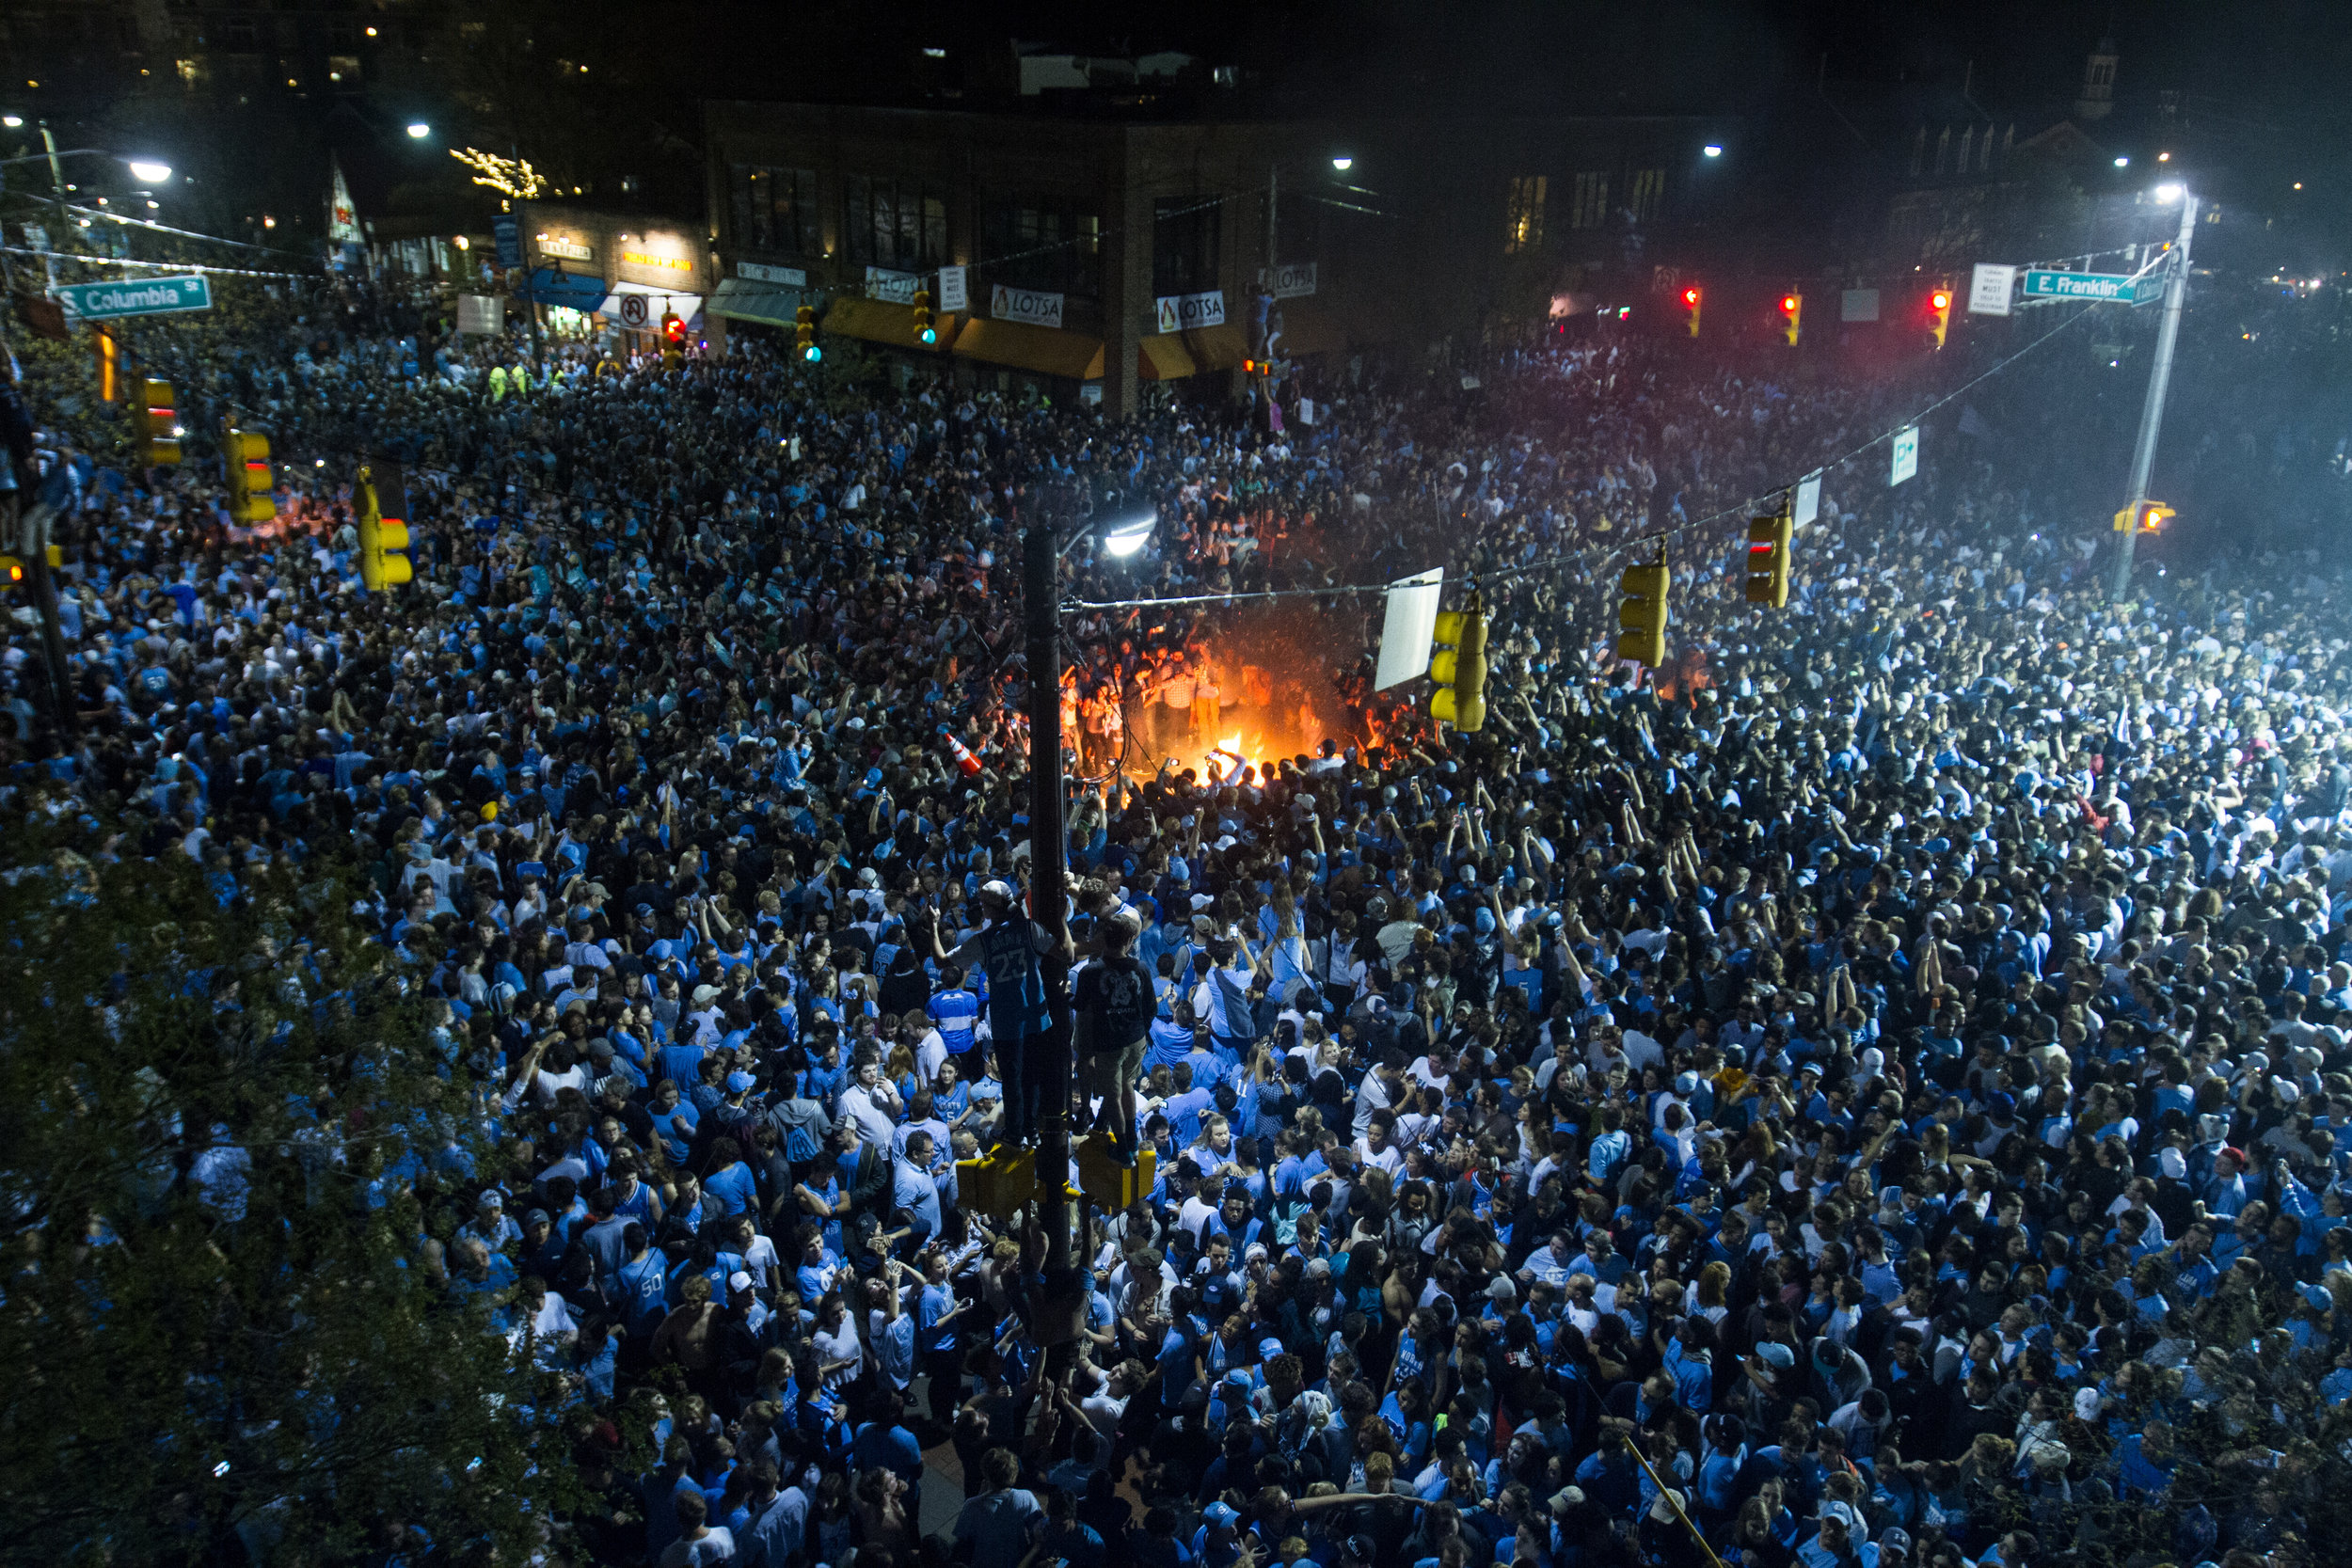 Thousands of Carolina fans storm Franklin Street after the North Carolina Tar Heels defeated the Gonzaga Bulldogs 71 to 65 on April 3, 2017.